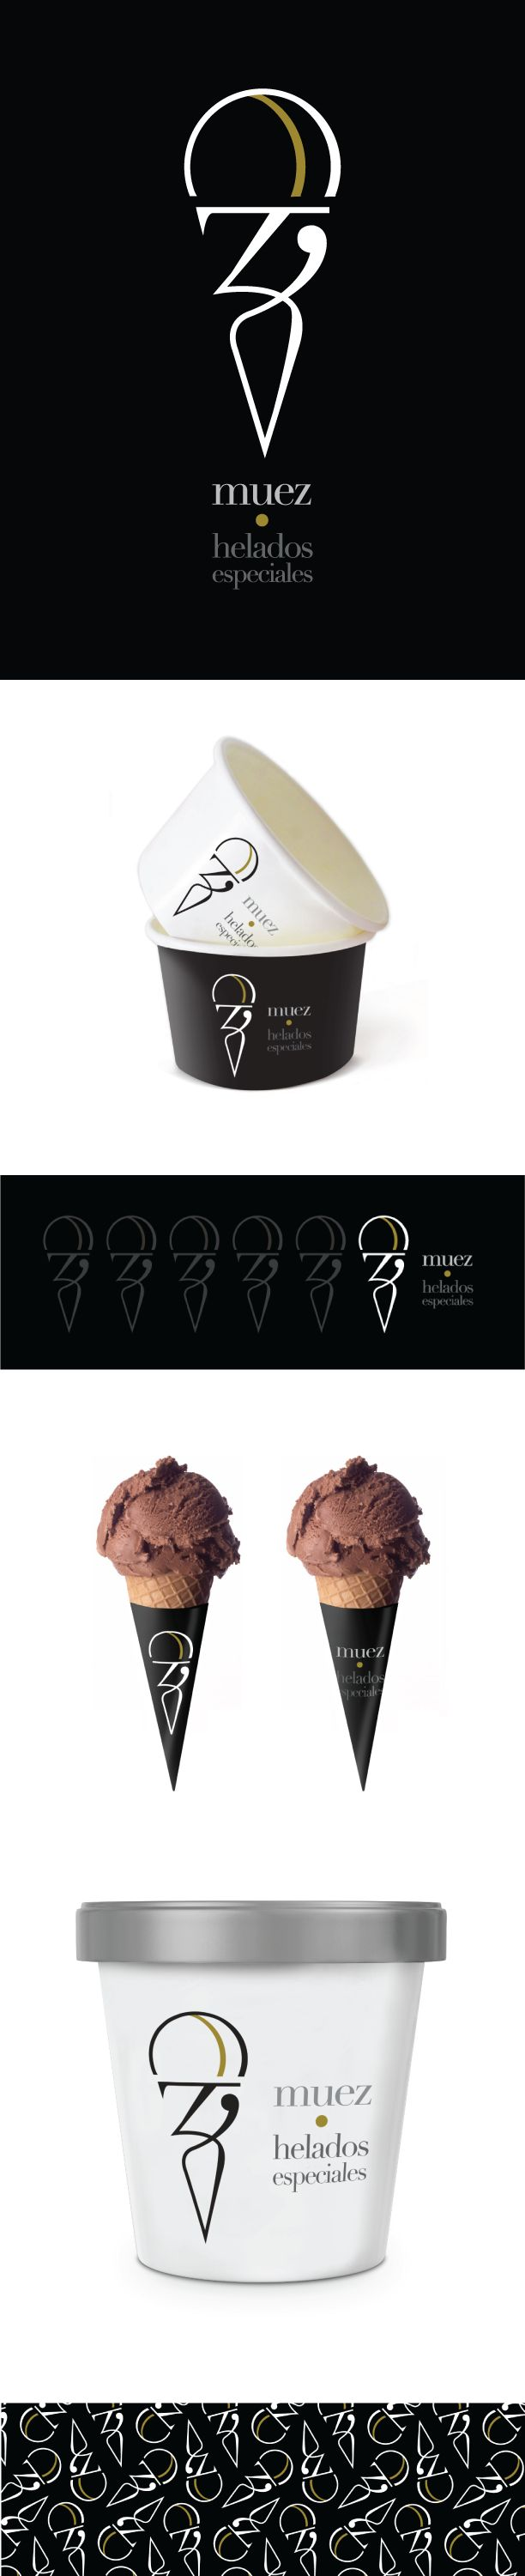 Muez por latte.com.mx #food #icecream #identity #graphicdesign #logo #mexico #branding #biblioteques_UVEG